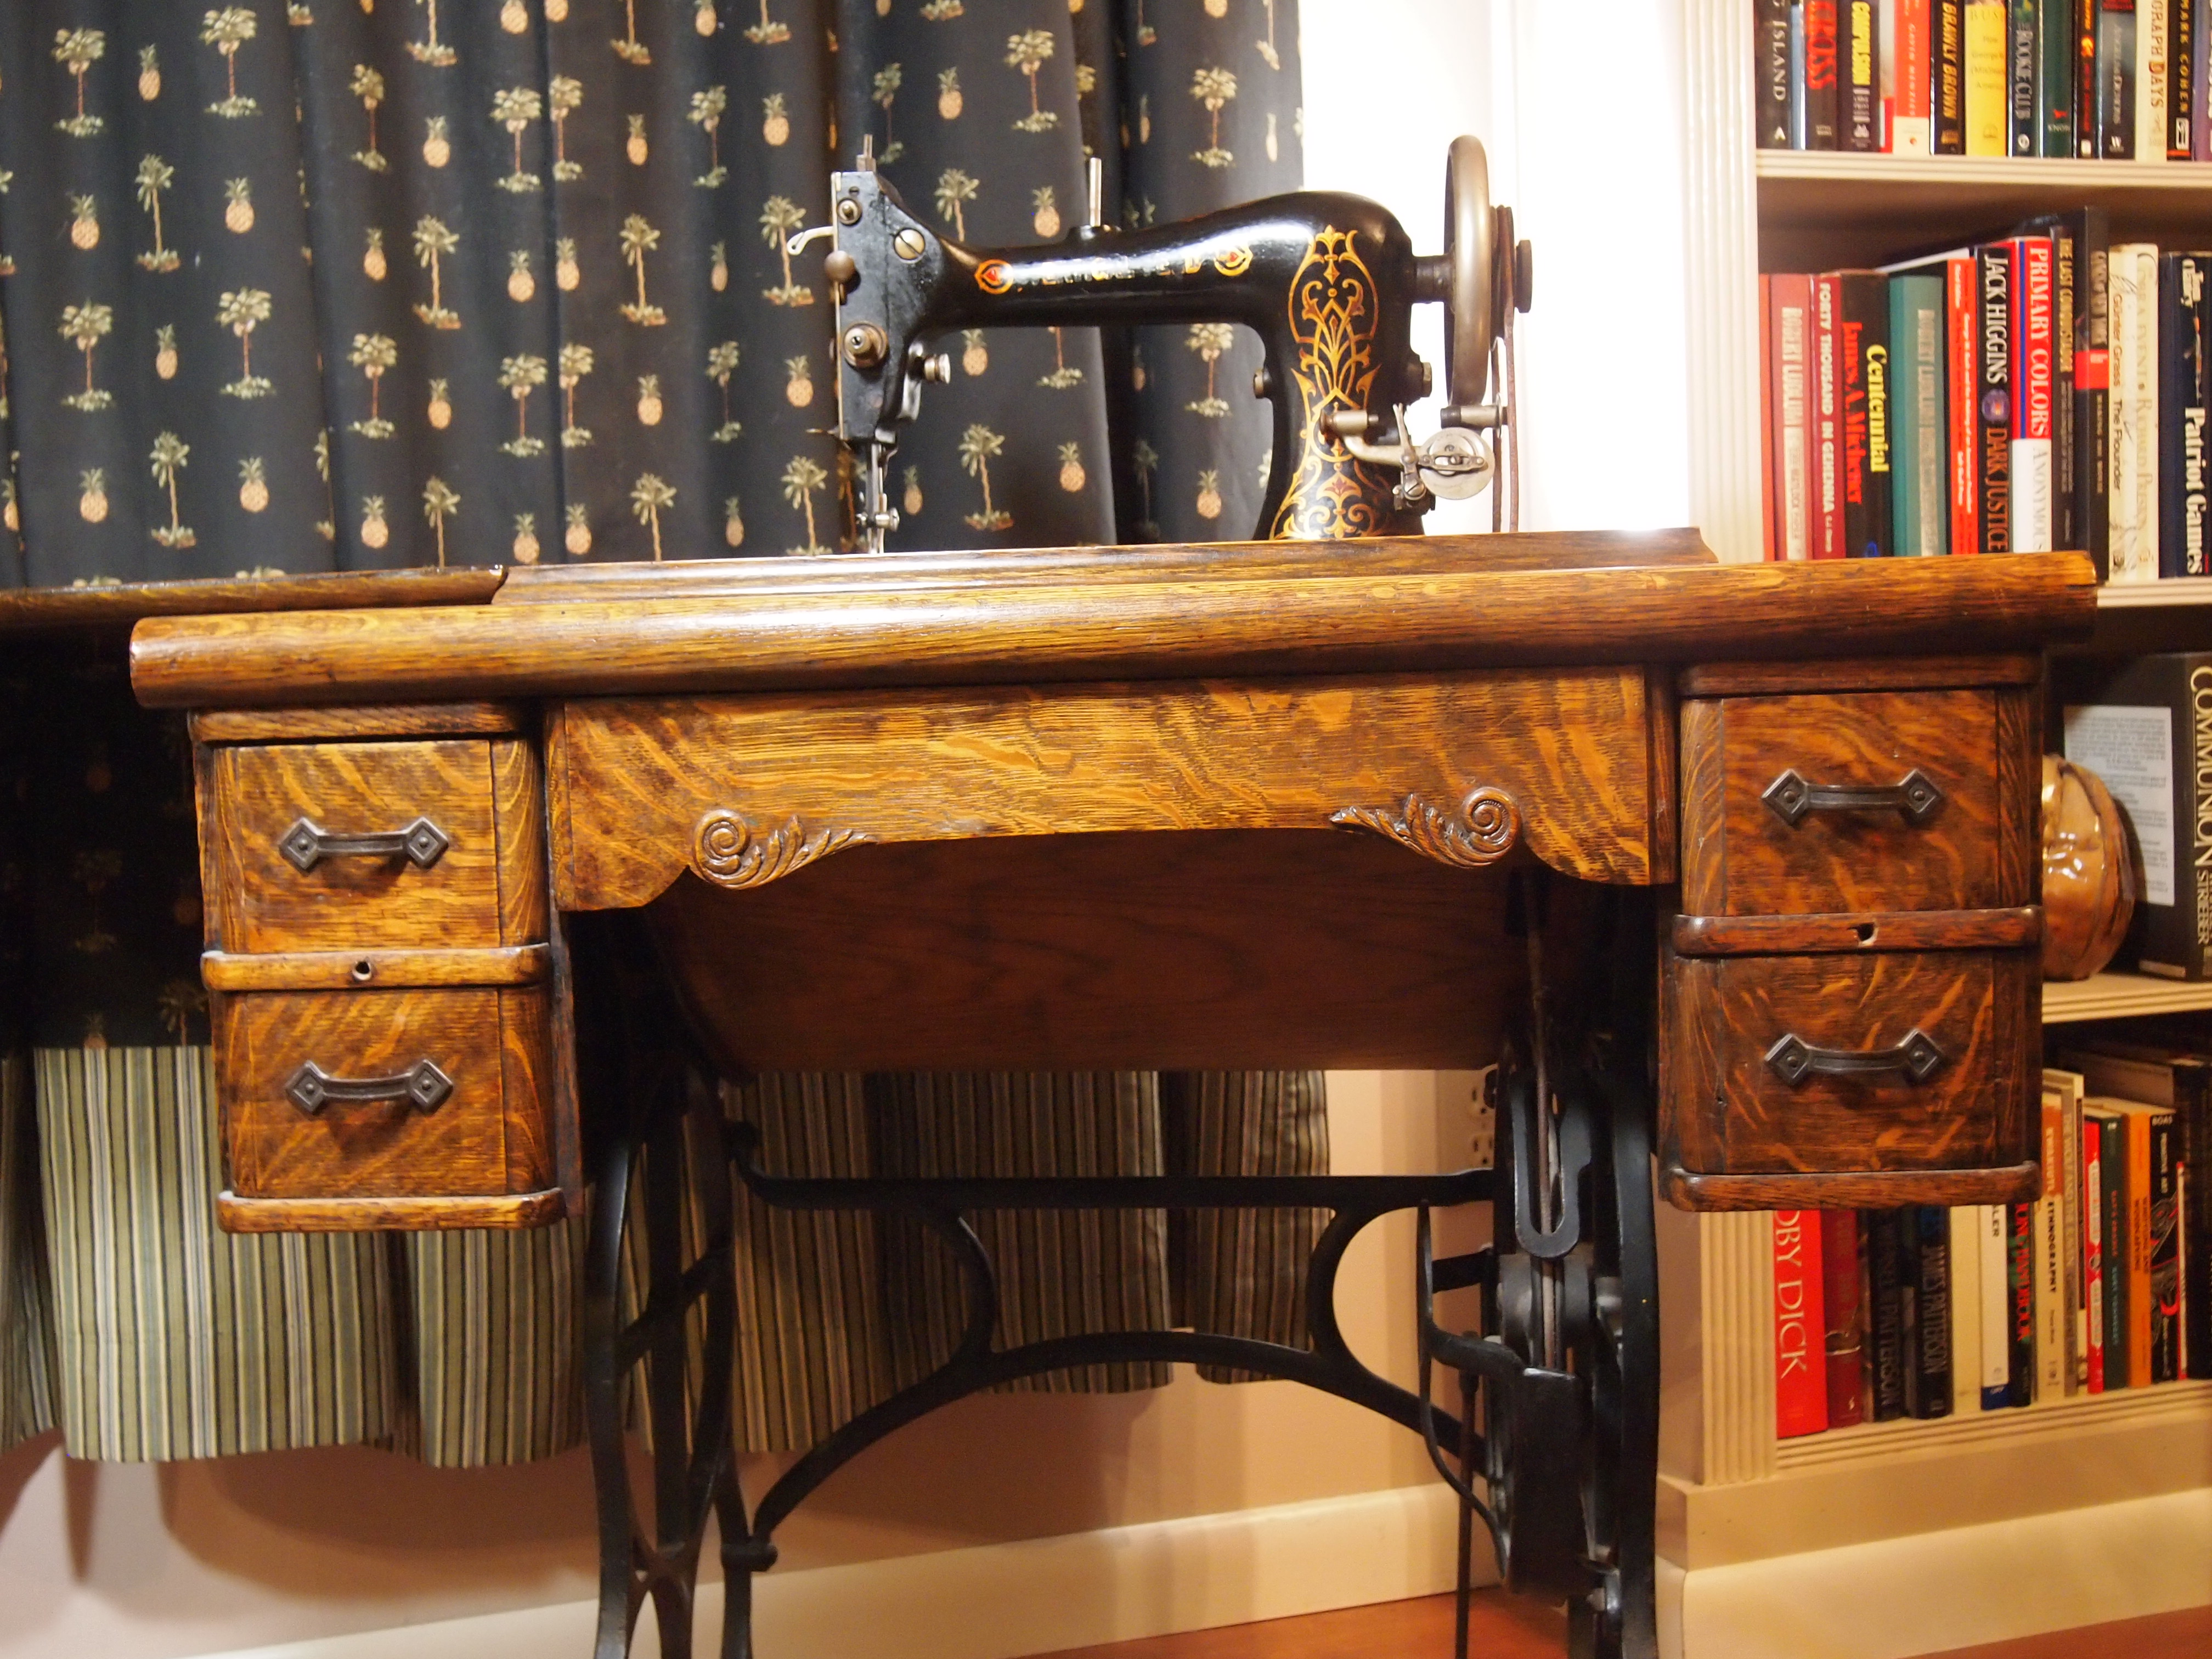 Treadle Sewing Machine Cabinet Sewing Machines I Love If These Threads Could Talk